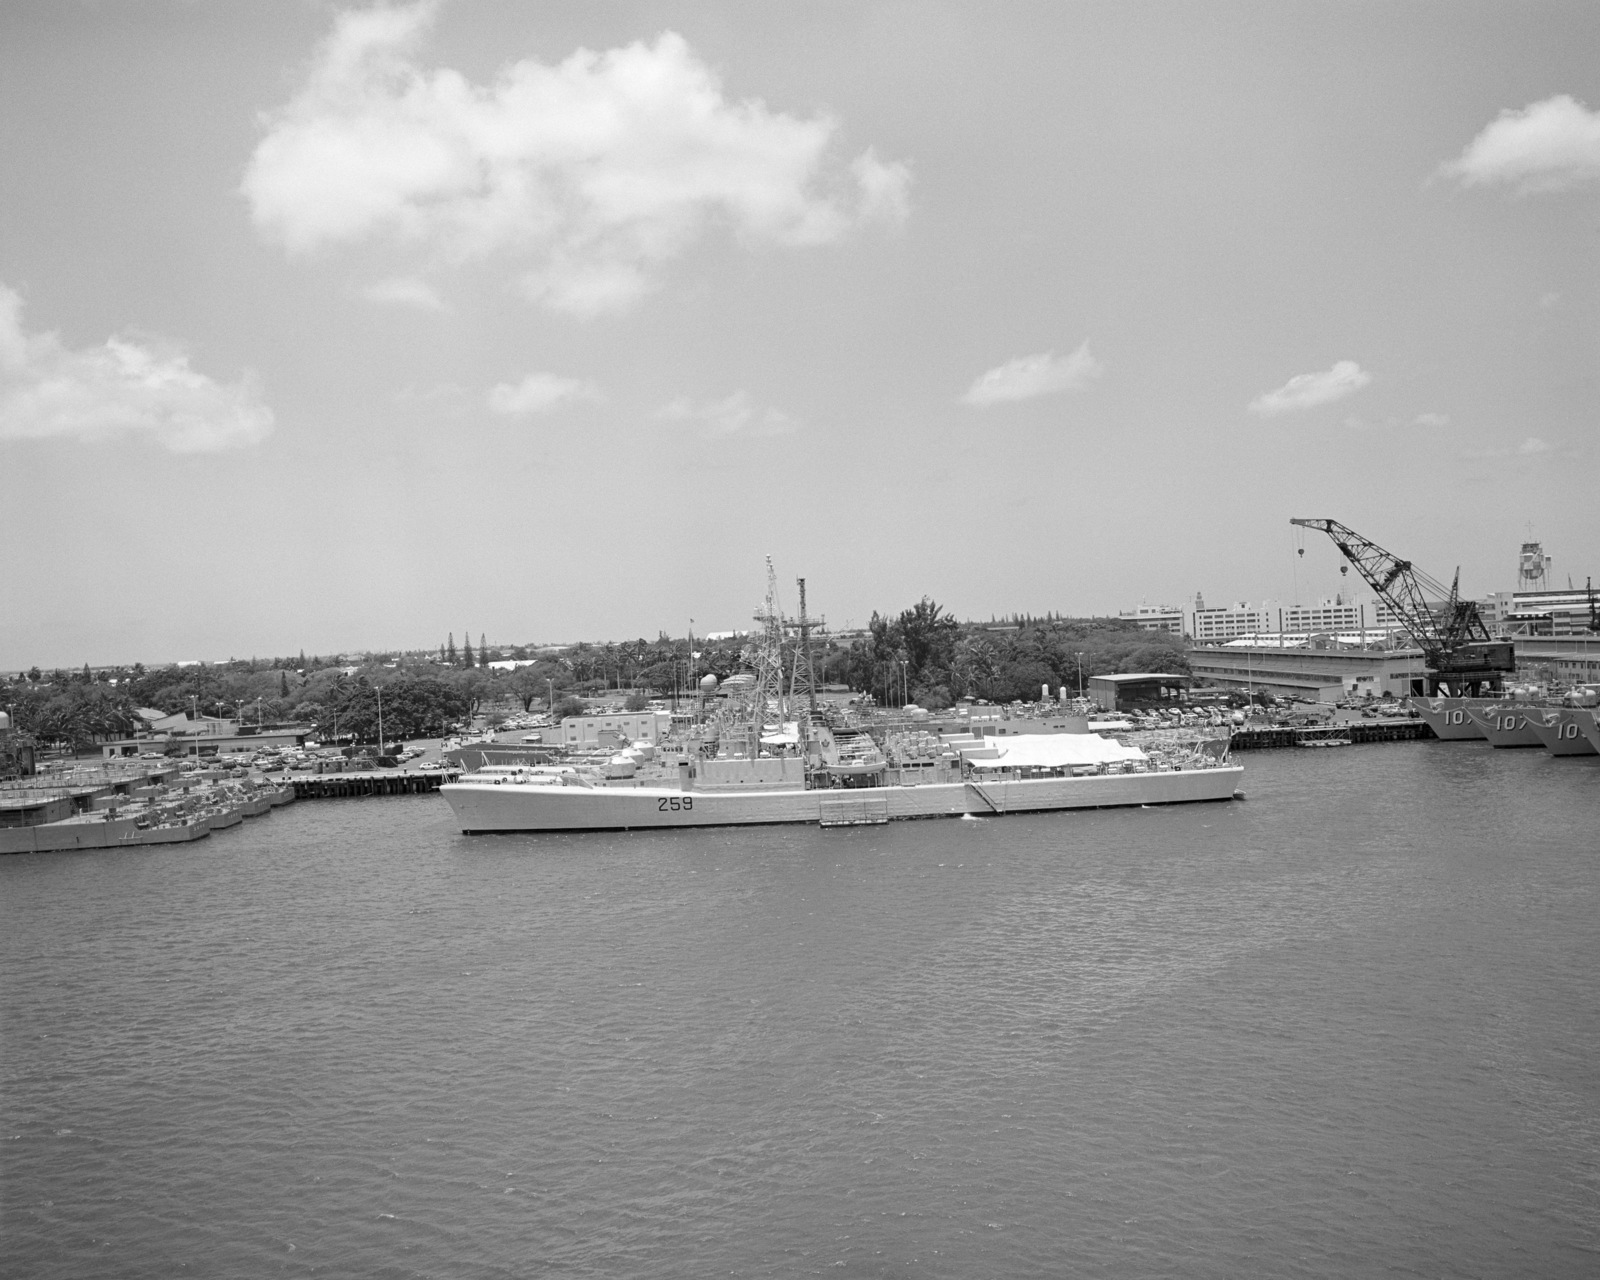 A port beam view of Canadian frigates moored to piers during Exercise RIMPAC '86